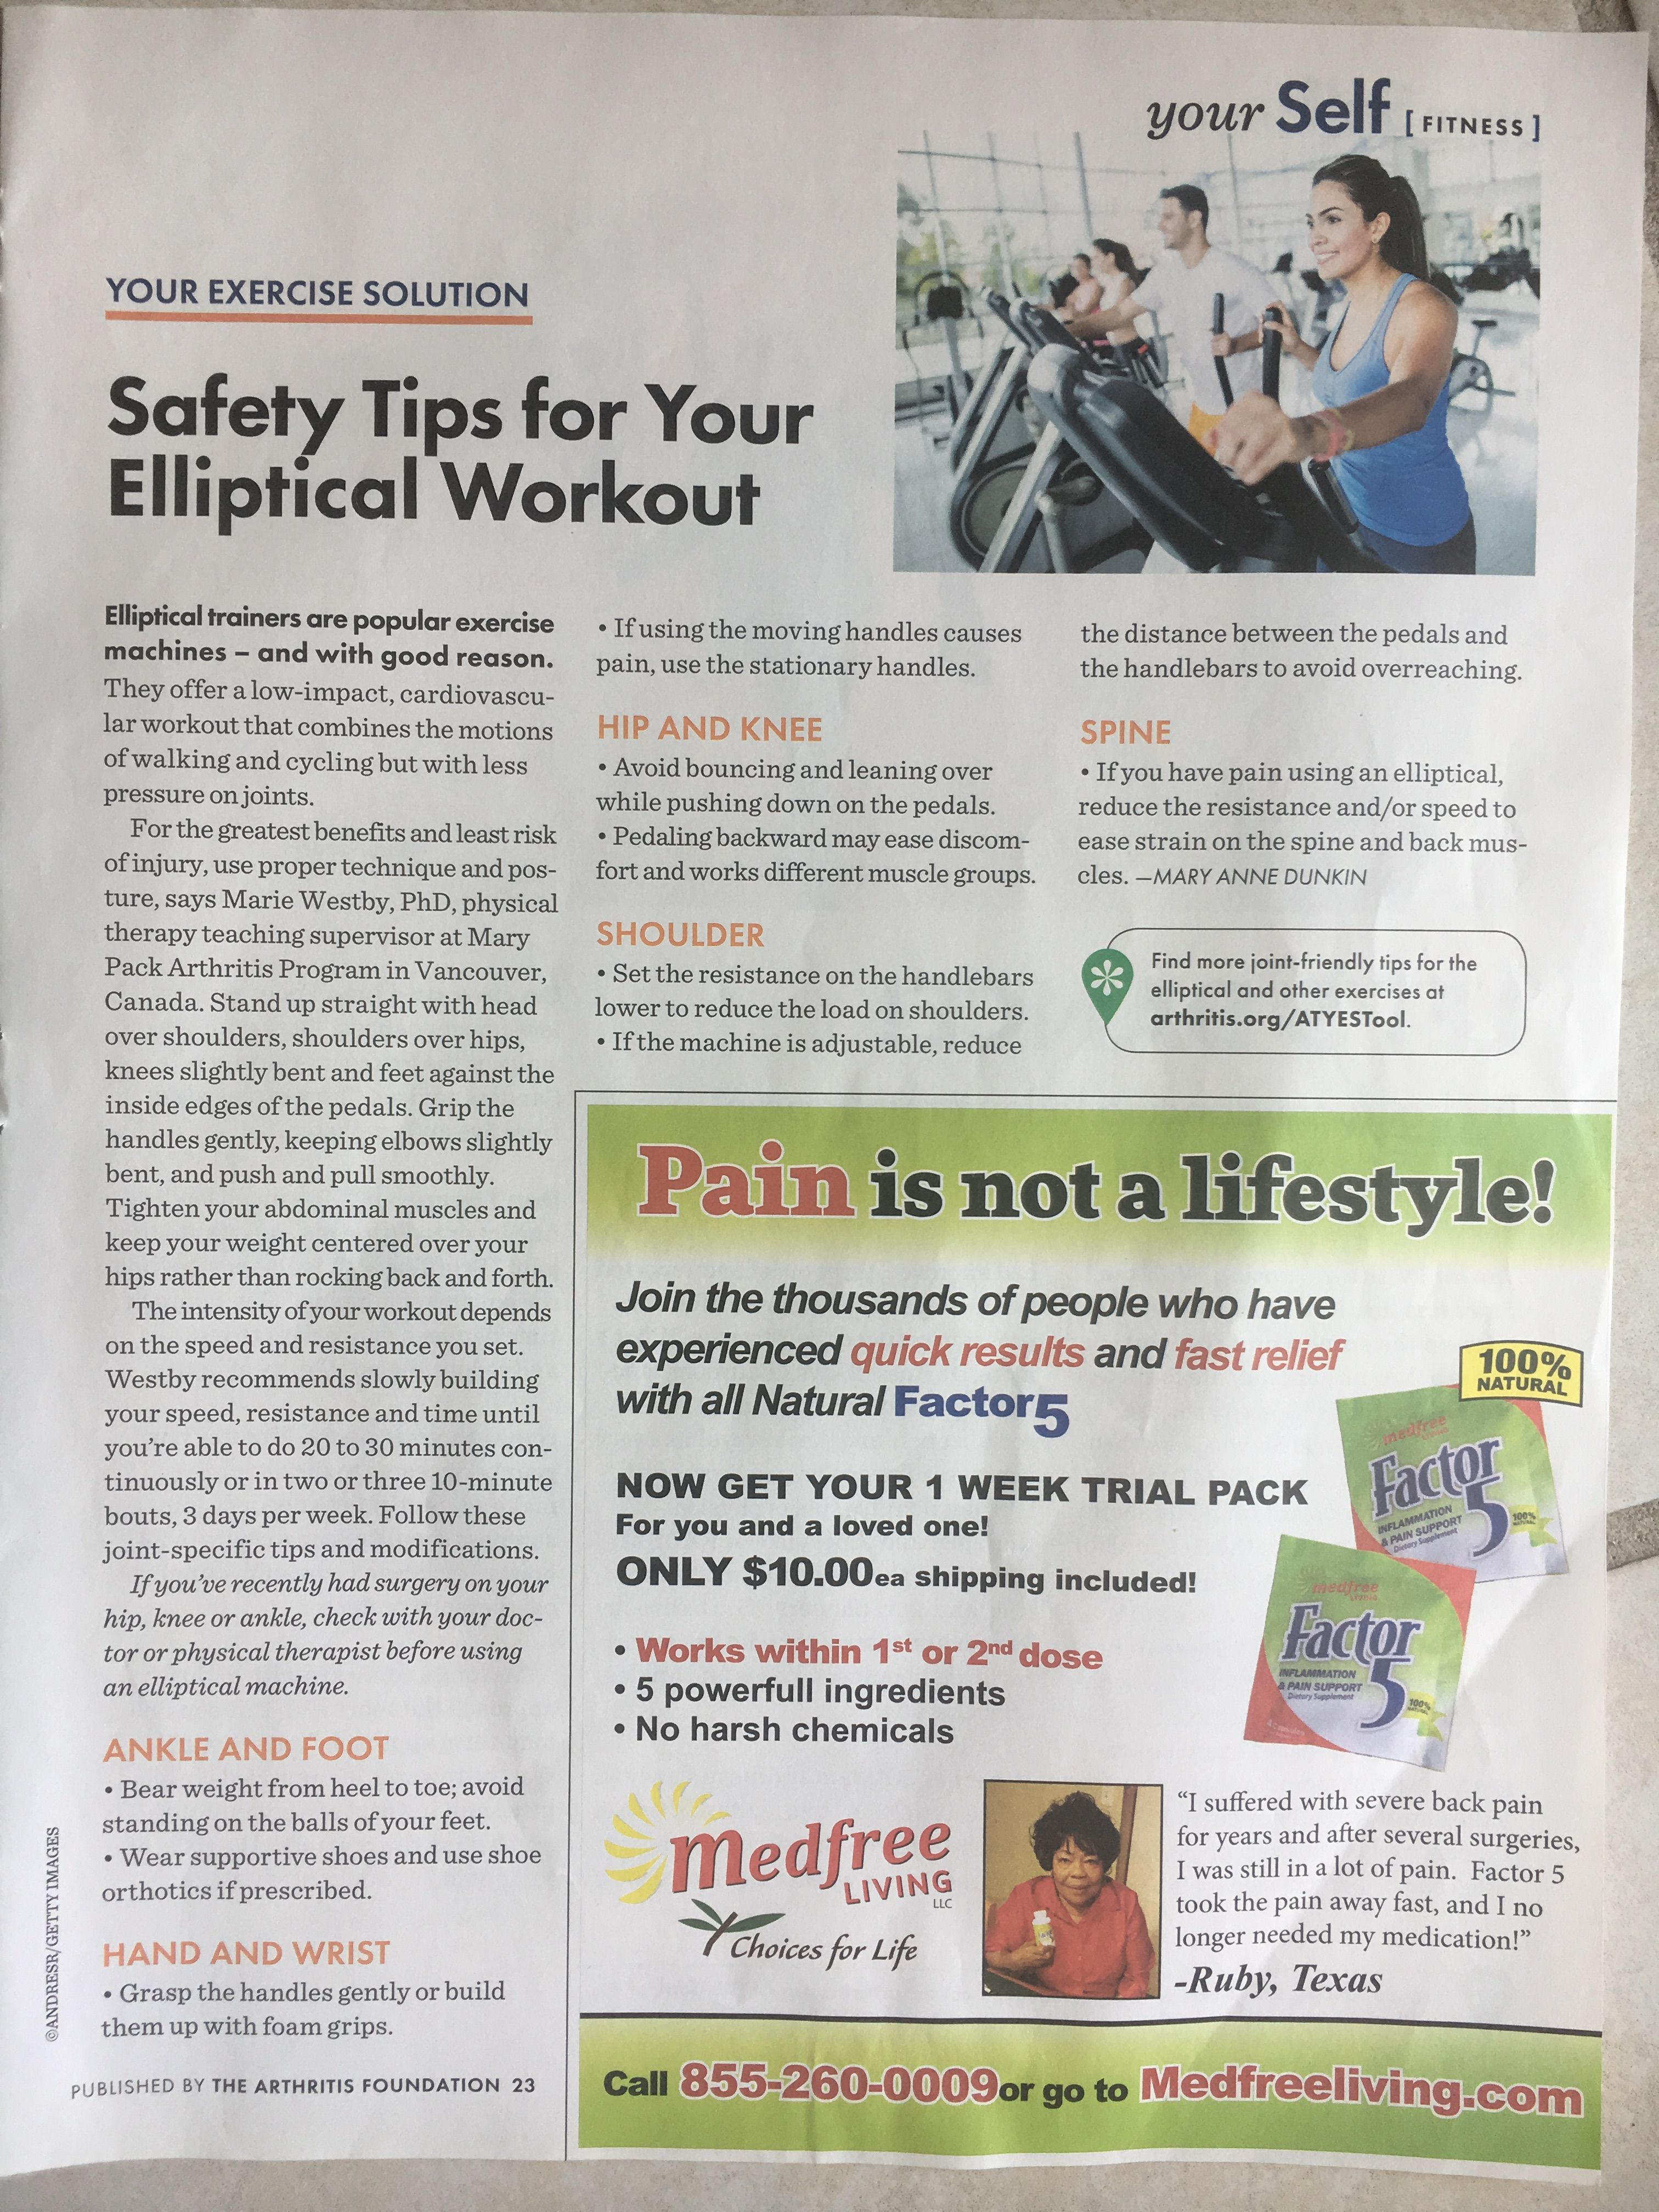 Elliptical Workout Safety Tips for those with Arthritis